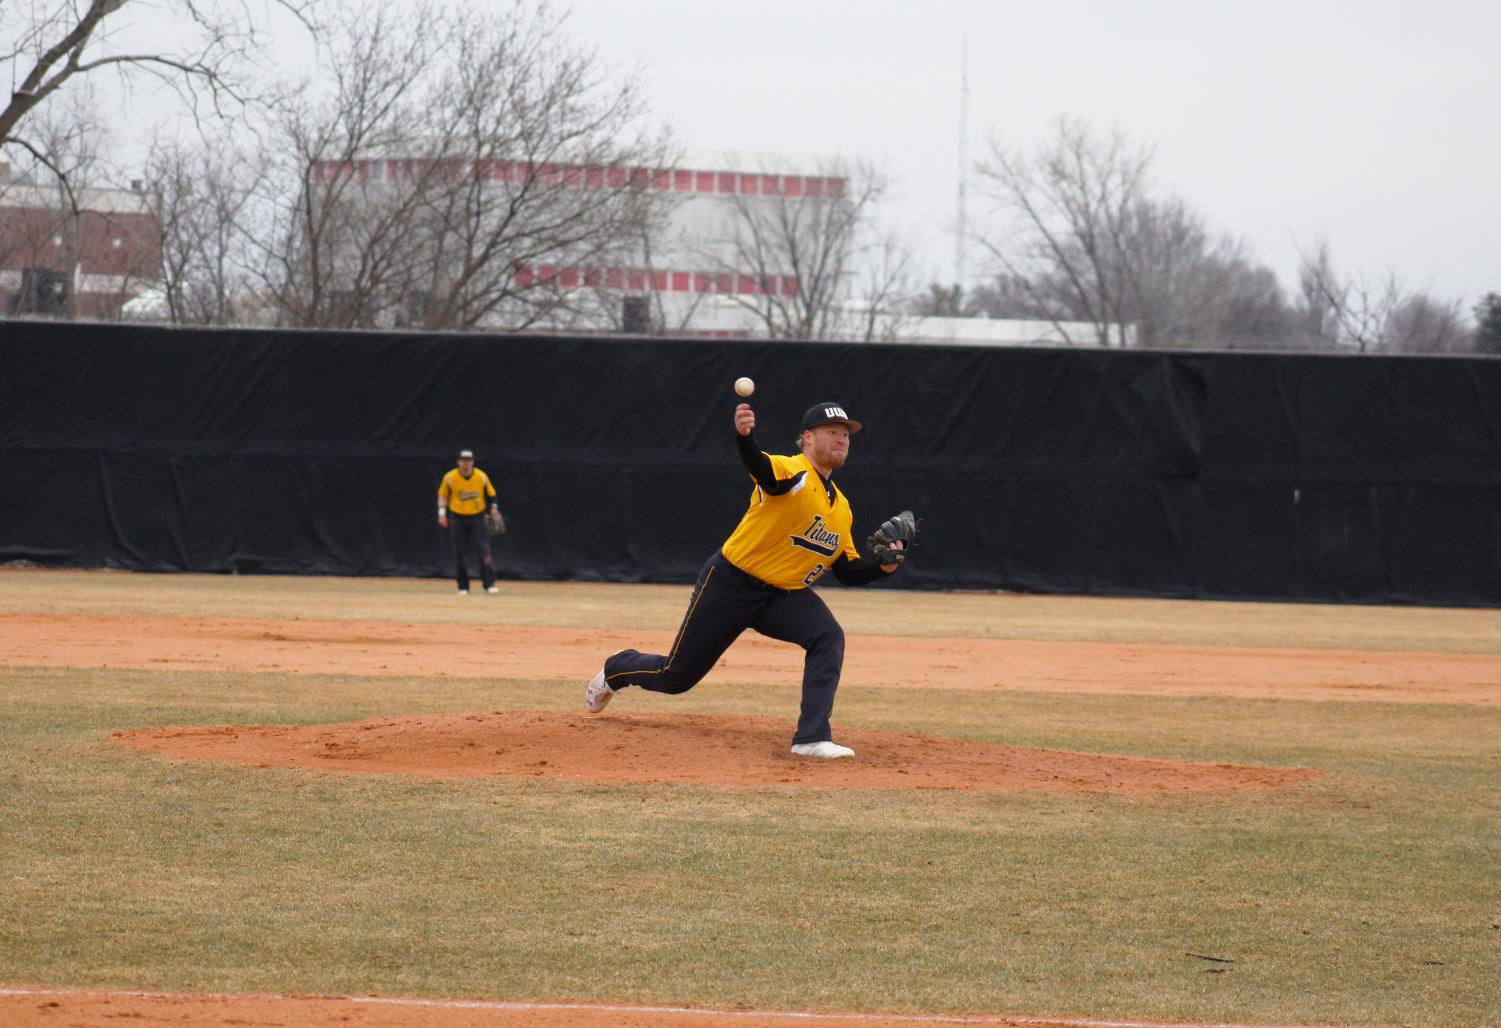 Senior UWO right-hander Jesse Sustachek delivers a pitch against UW-Stevens Point on April 12. On the season, Sustachek has appeared in six games, starting all six. He has earned two victories so far, pitching to a 5.04 ERA across 25 innings.